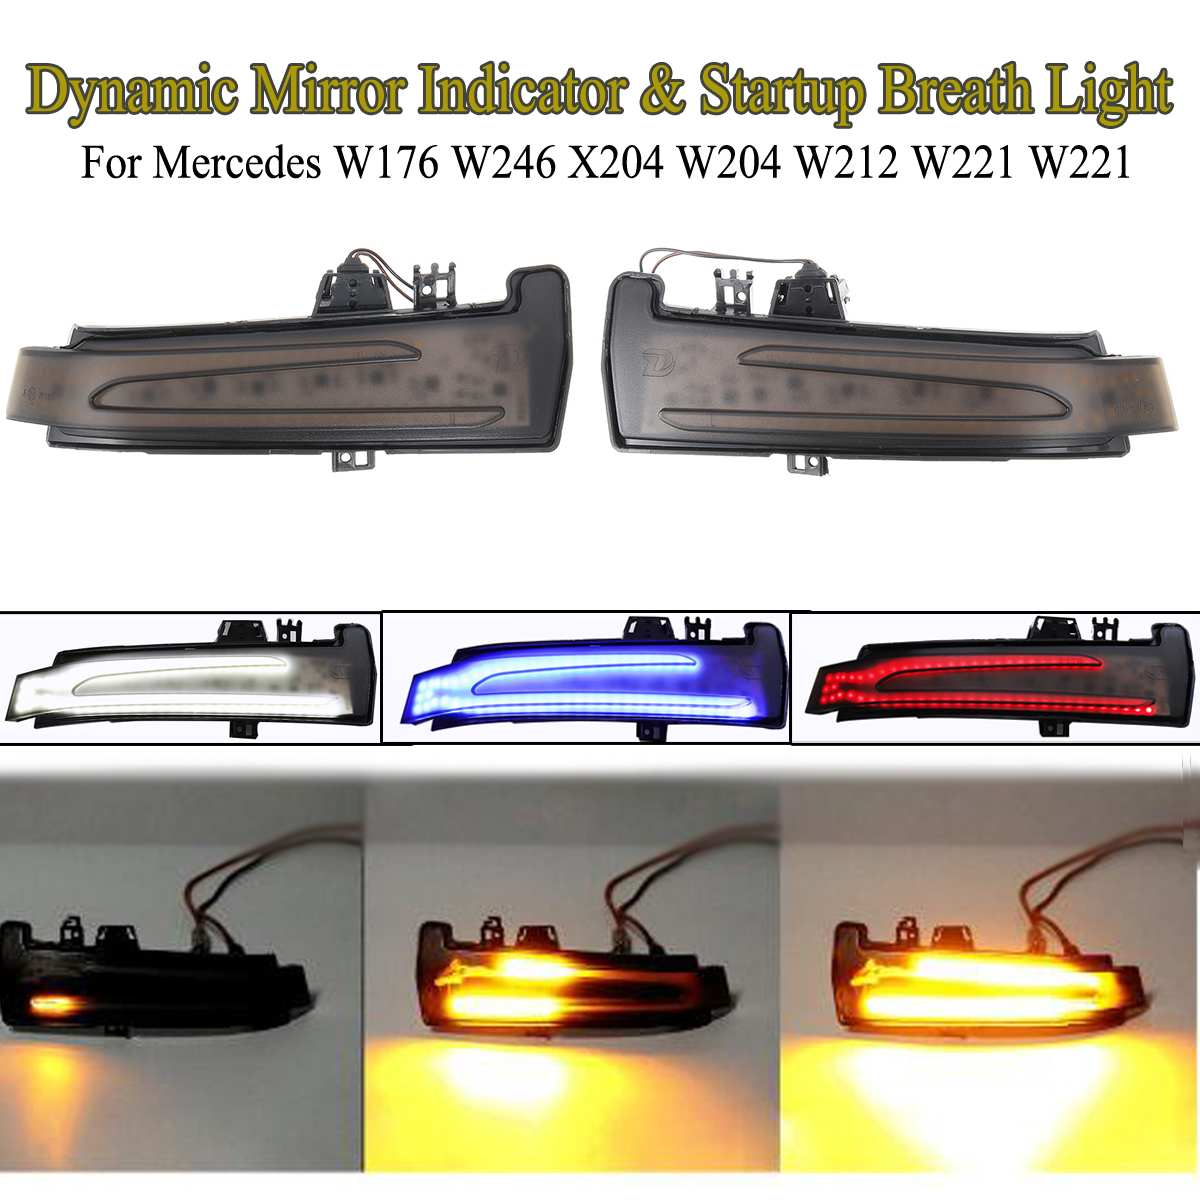 2x Dynamic <font><b>LED</b></font> Side Wing Mirrors Indicator Flowing Turn Signal Light Amber & Startup Breath Light for <font><b>Mercedes</b></font> <font><b>Benz</b></font> <font><b>W205</b></font> W213 image